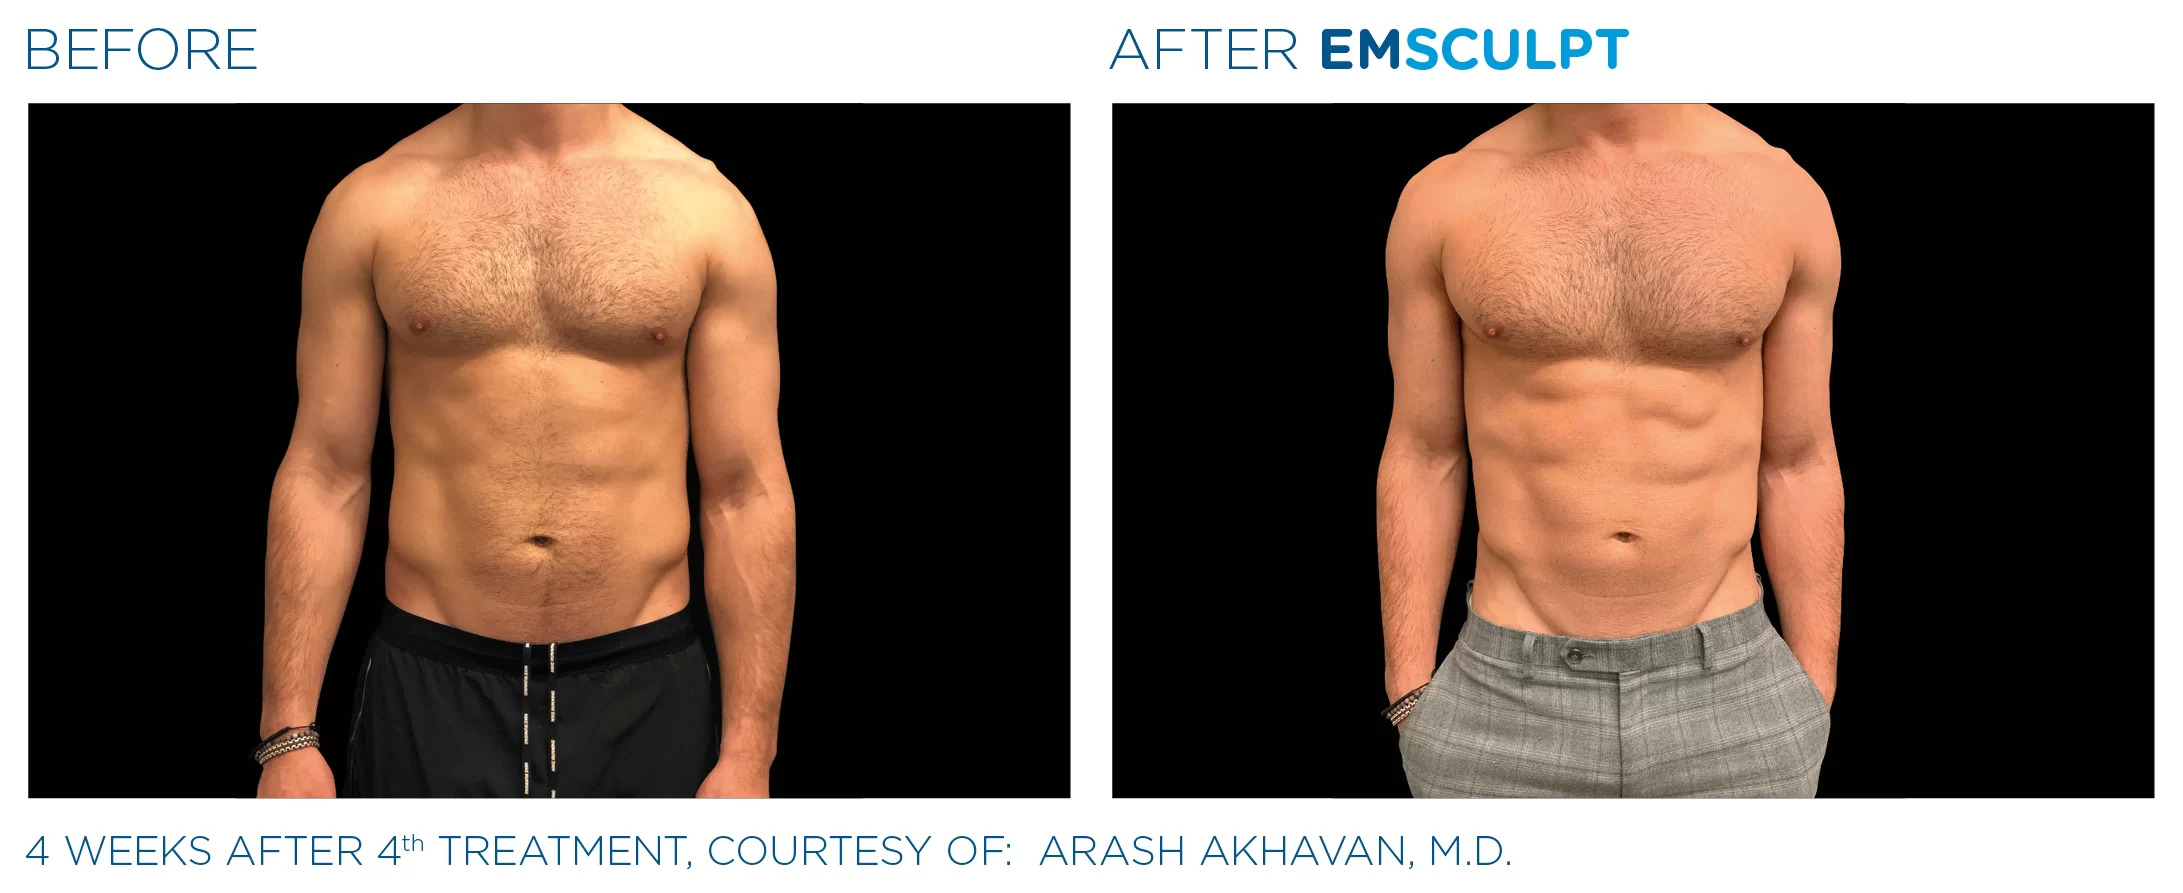 EmSculpt before and after photo #5